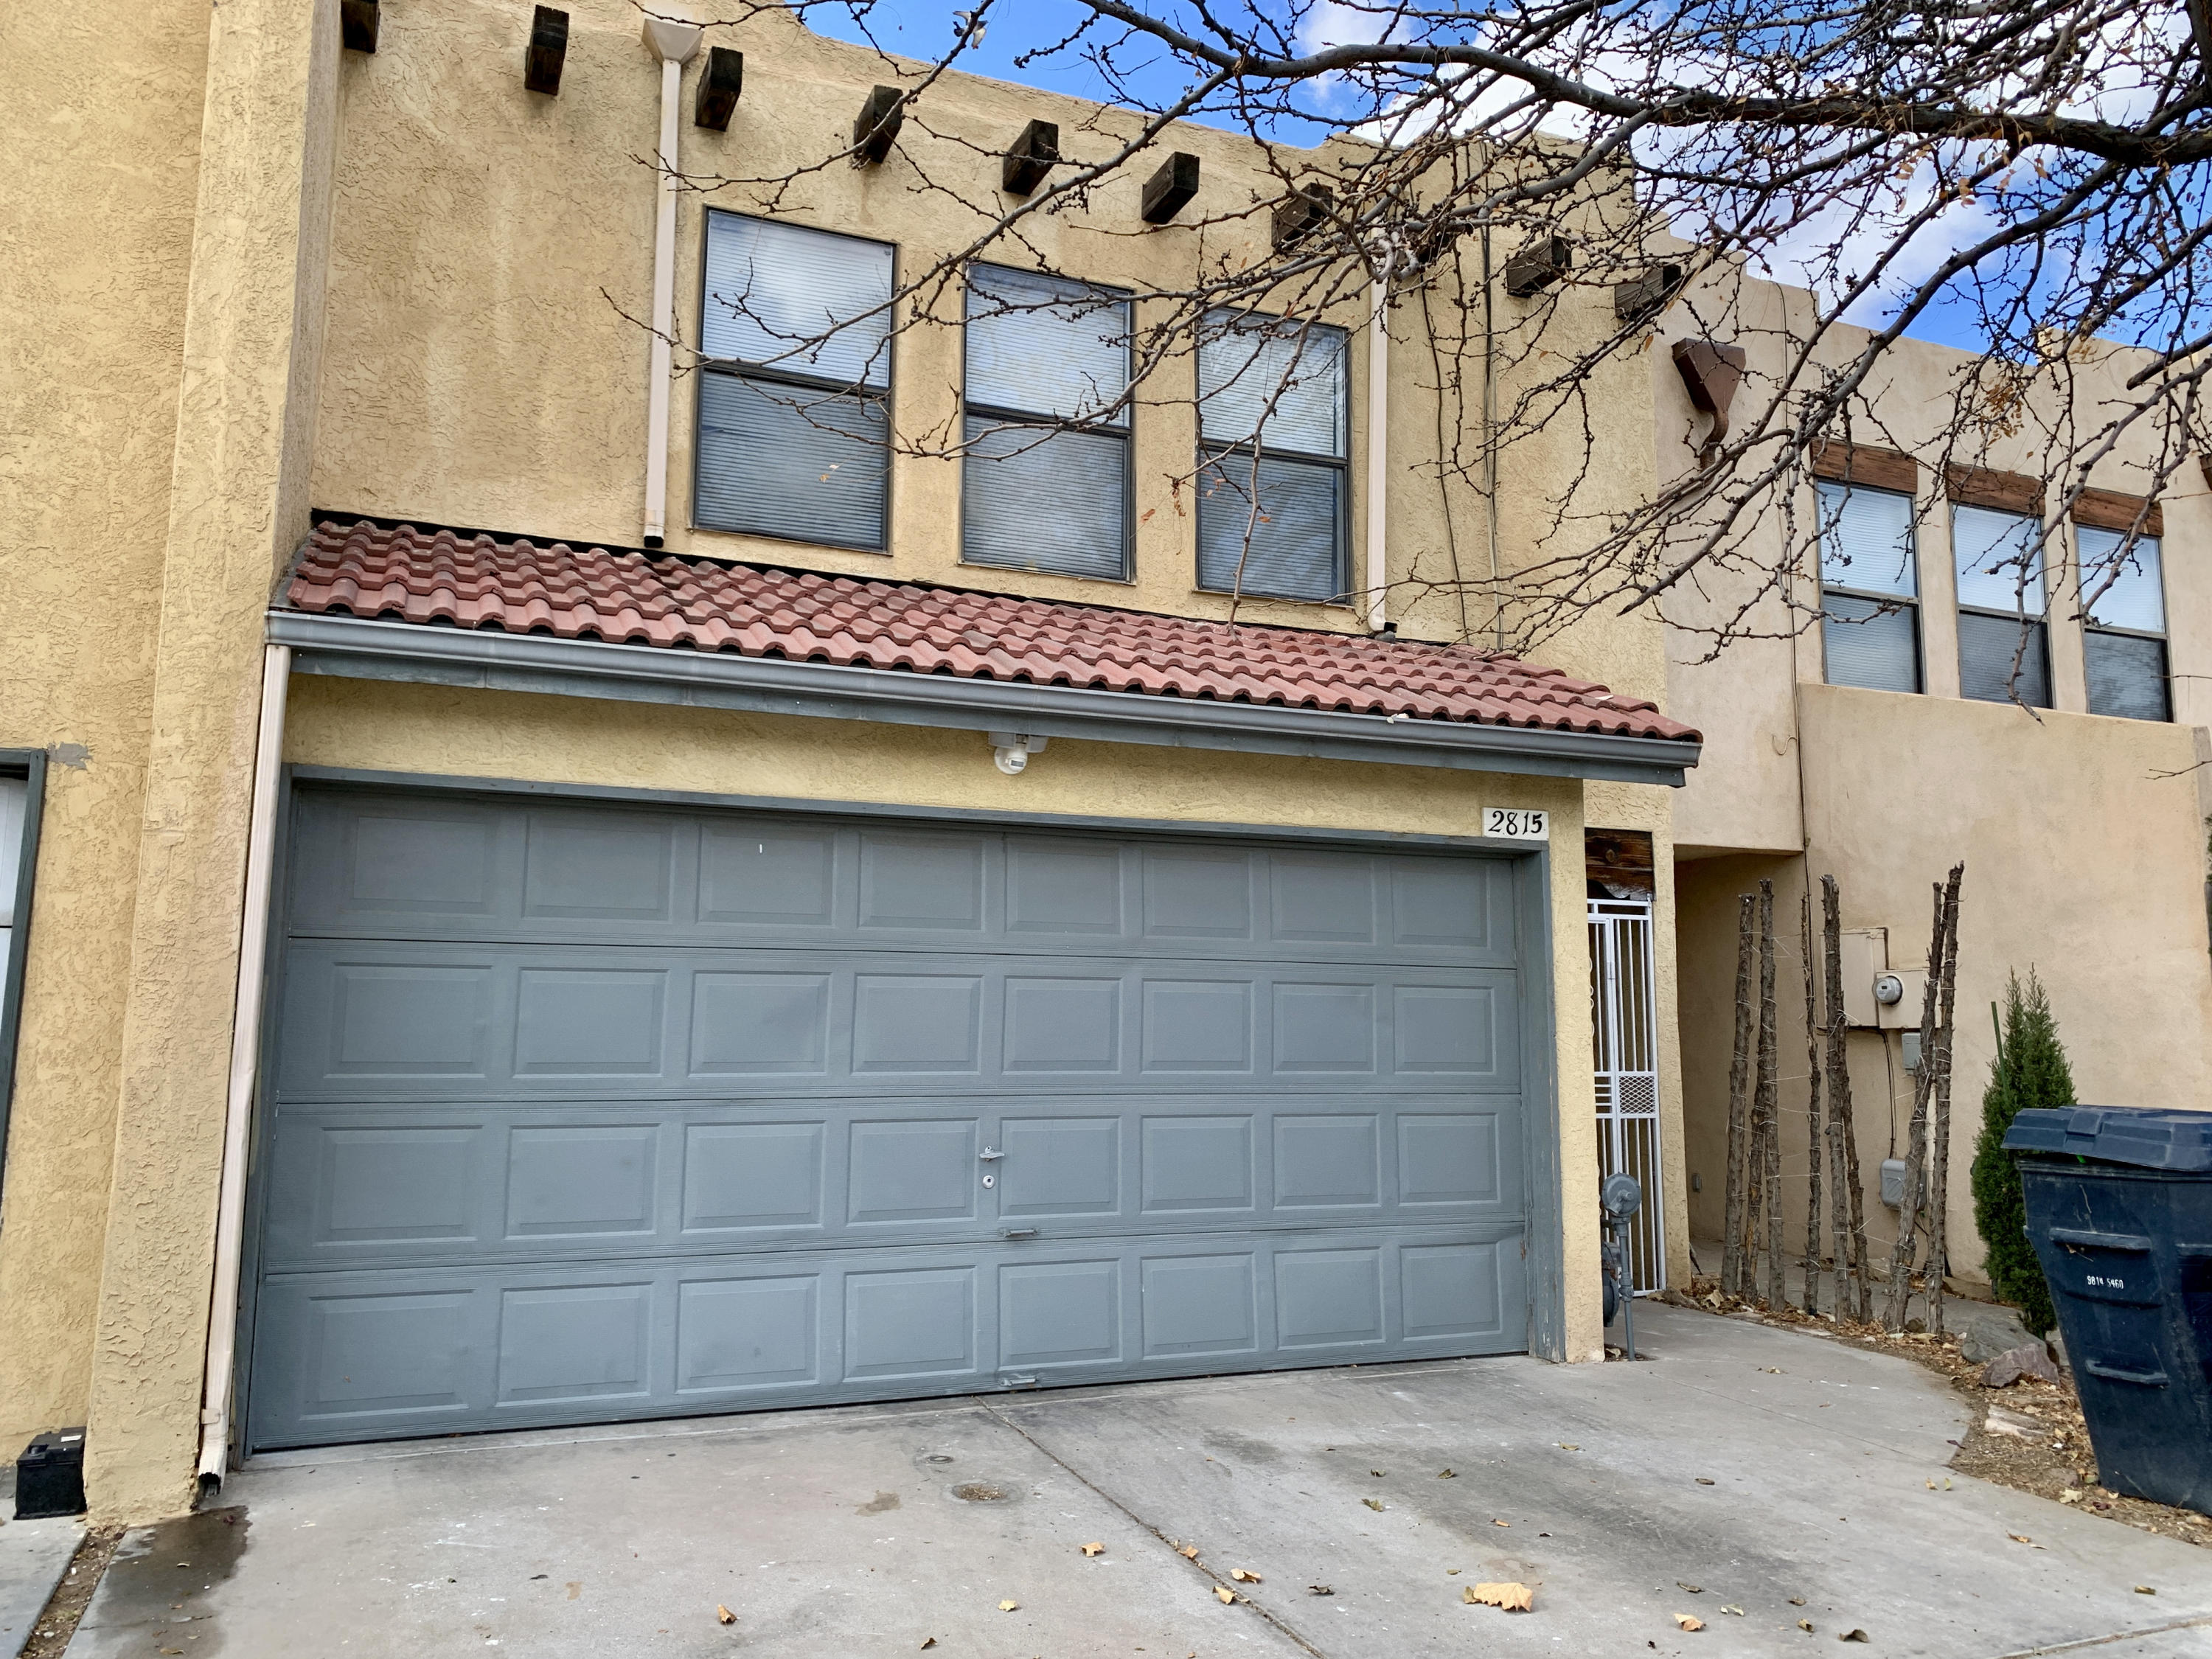 This beautiful, well maintained Townhome has 3 bedrooms, 2 1/2 bathrooms and a two car garage. The spacious living room with a cozy wood fireplace connects to the dining and kitchen areas, creating an open and social space.  The master bedroom is large, with three closets and a private full bathroom.  An enclosed back yard is ready for your personal landscaping touches. The newly installed TPO roof has a warranty that transfers to new owner. No HOA